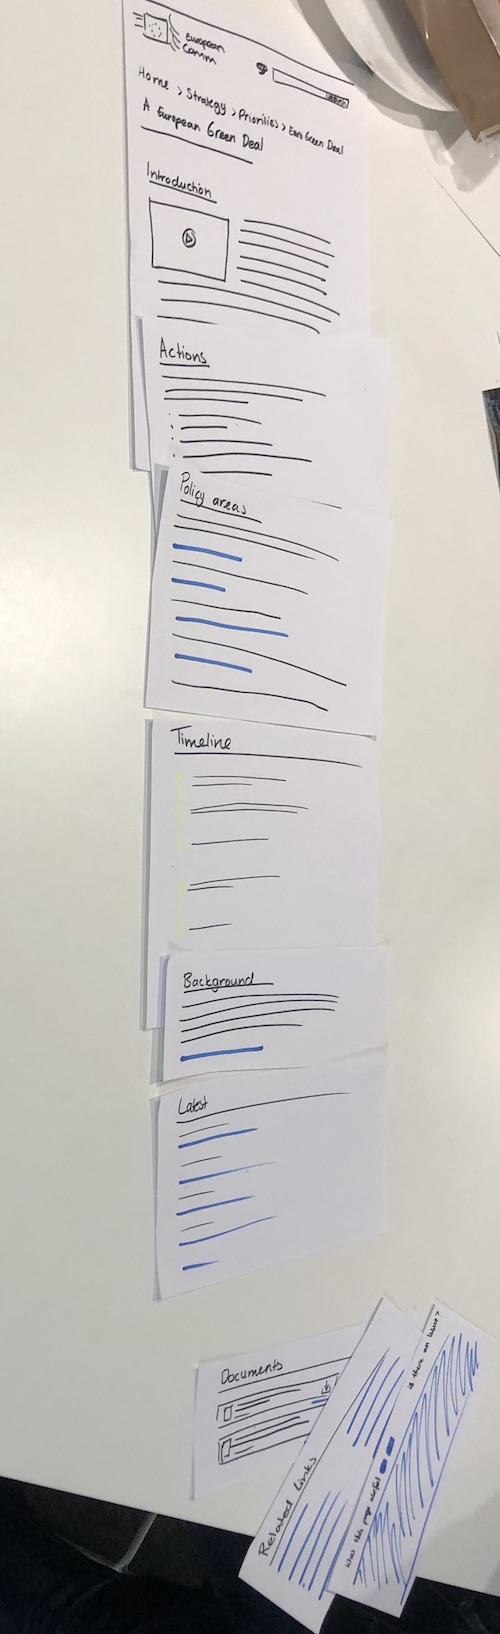 wireframing a page on paper